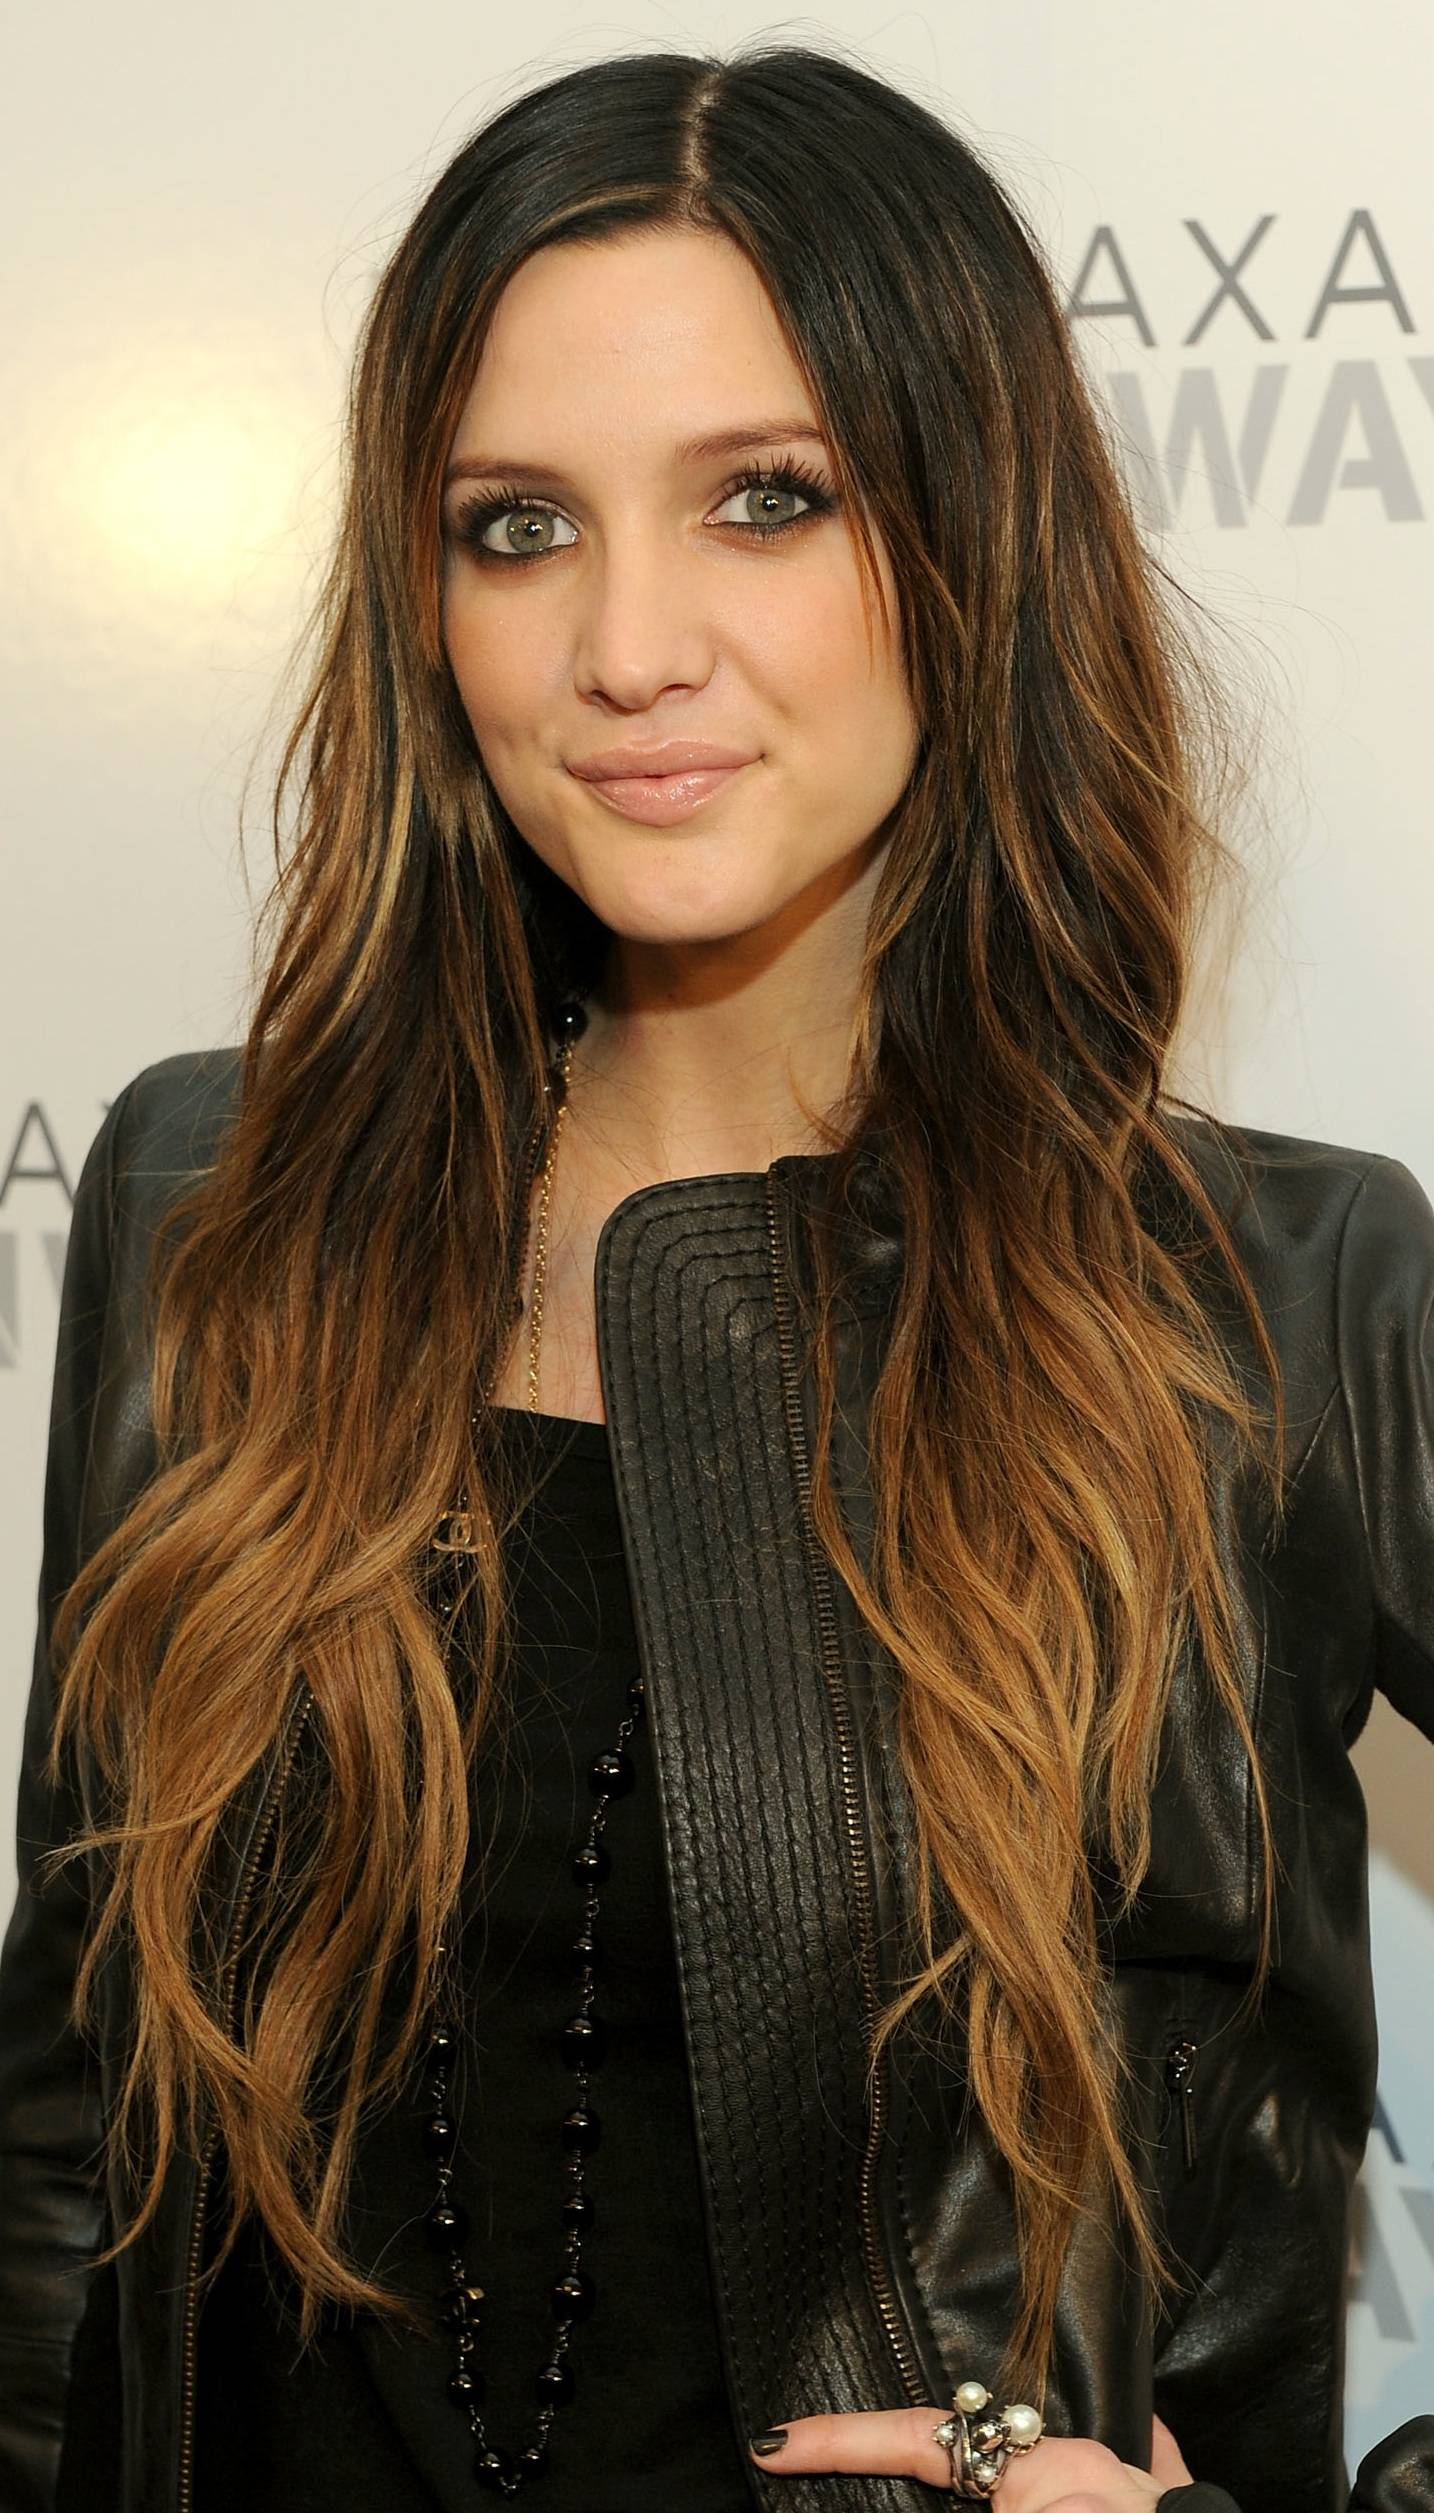 Long Wavy Brown Ombre Hairstyle for Women 2014 - Pretty Designs